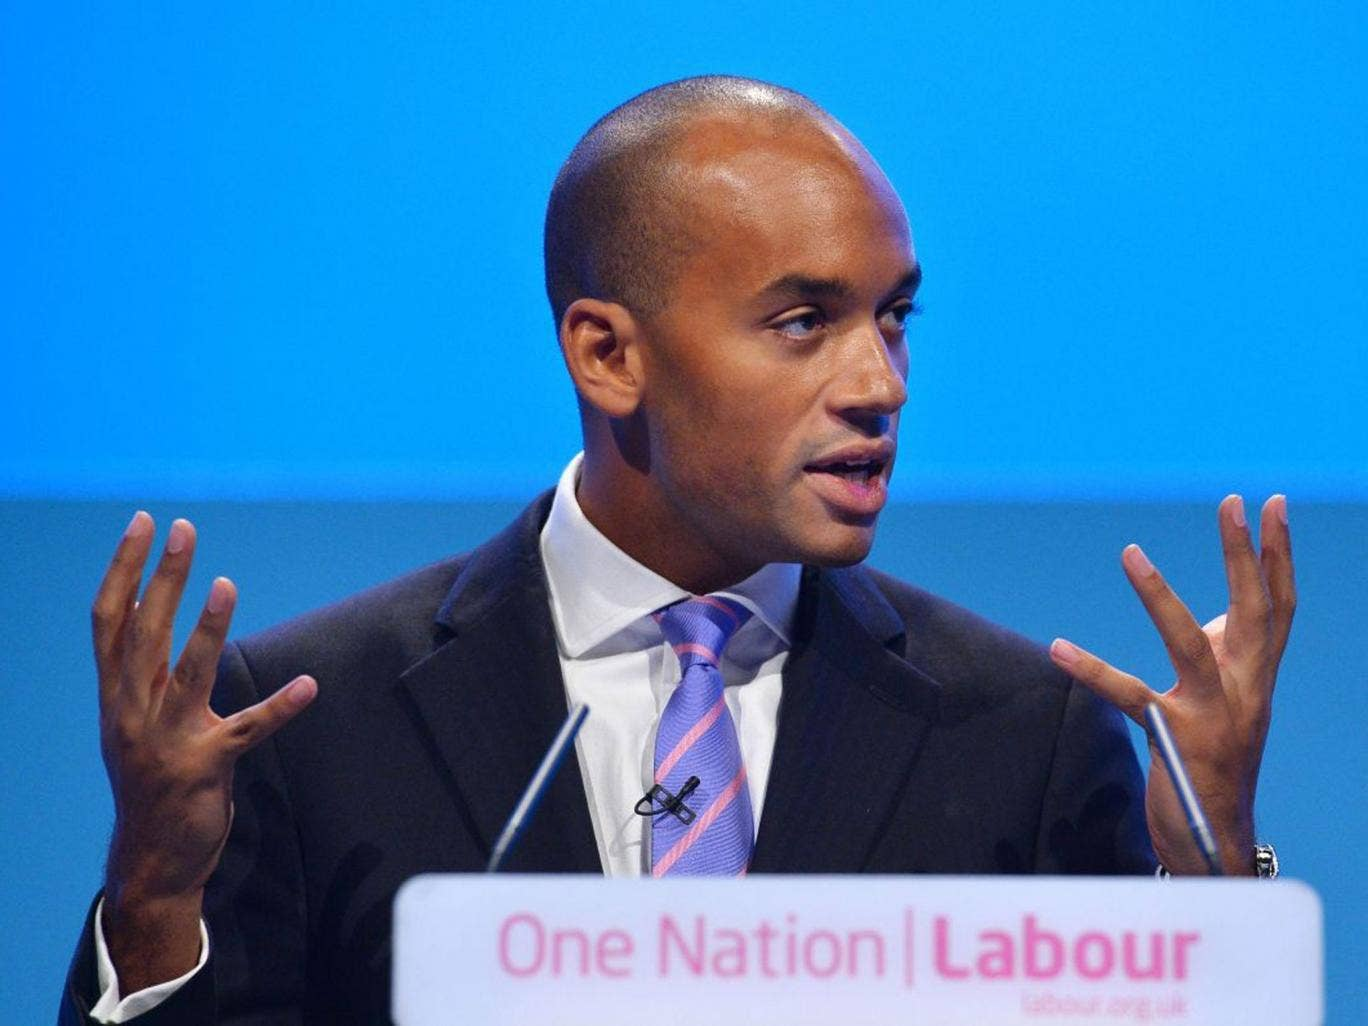 Chuka Umunna is a future contender for the Labour party leadership